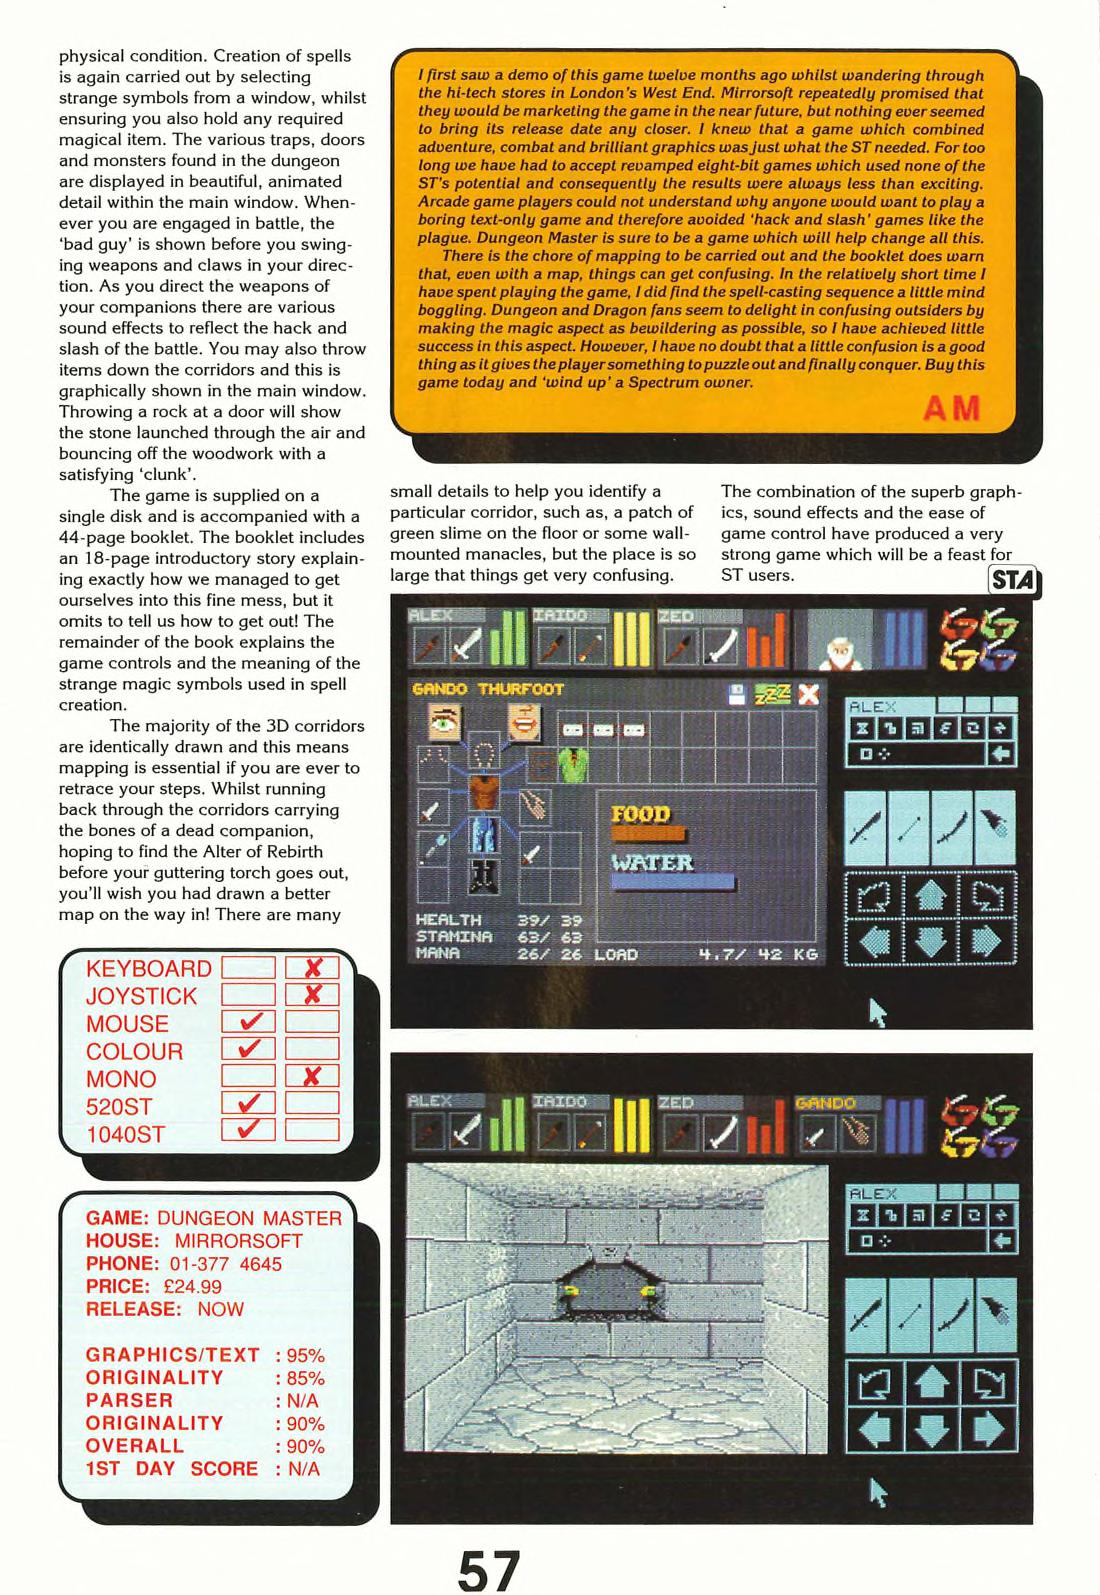 Dungeon Master for Atari ST Review published in British magazine 'ST Action', Issue #1 May 1988, Page 57